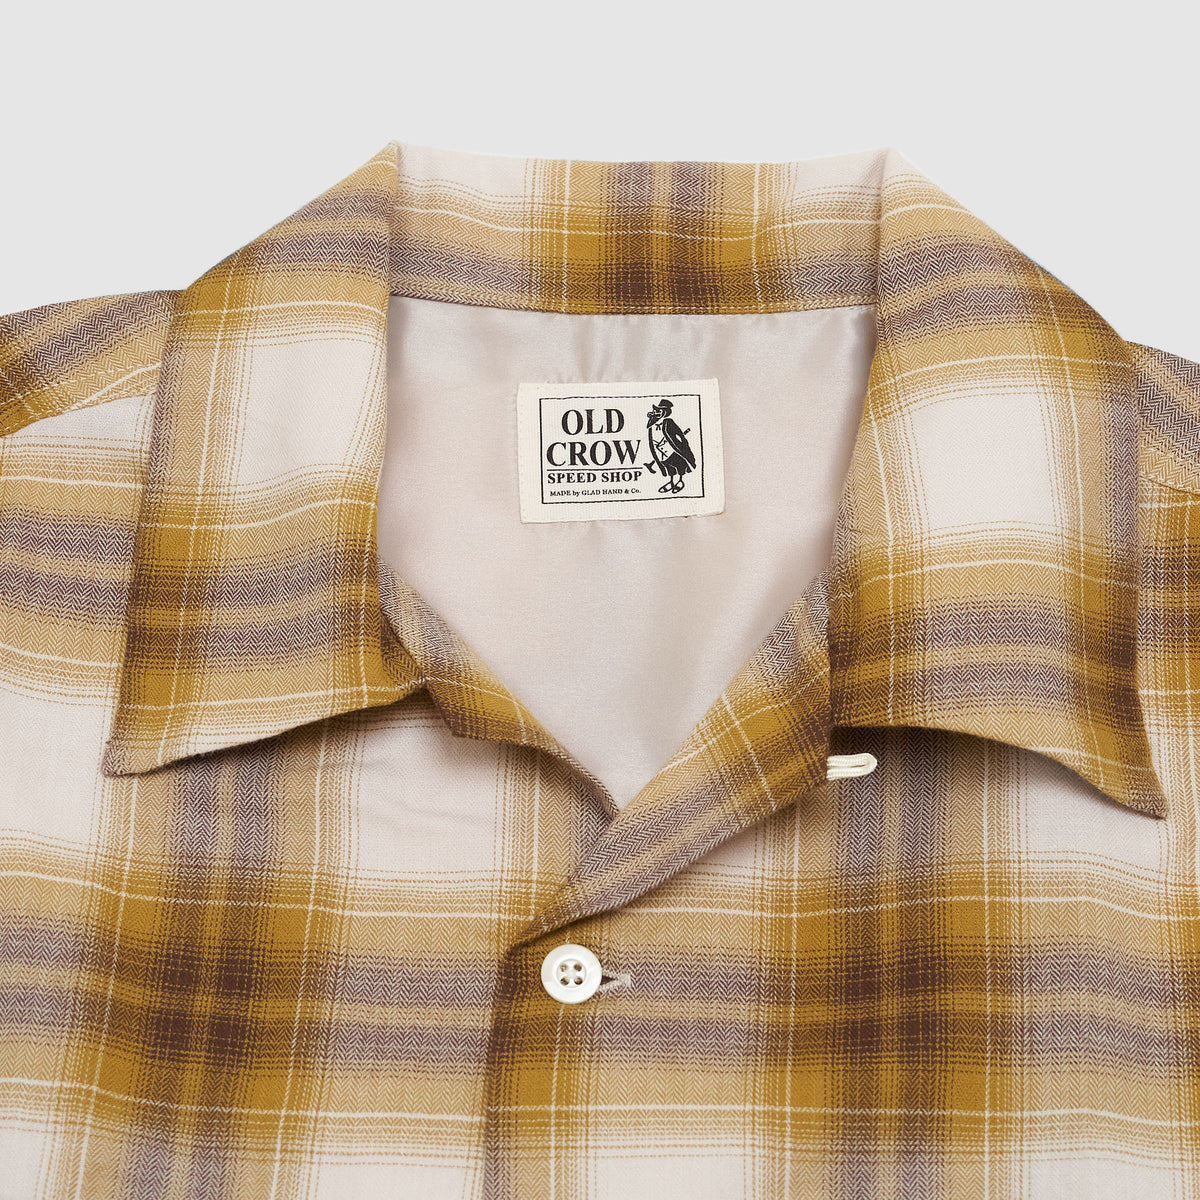 Old Crow Speed Shop by Glad Hand & Co. Work Shirt